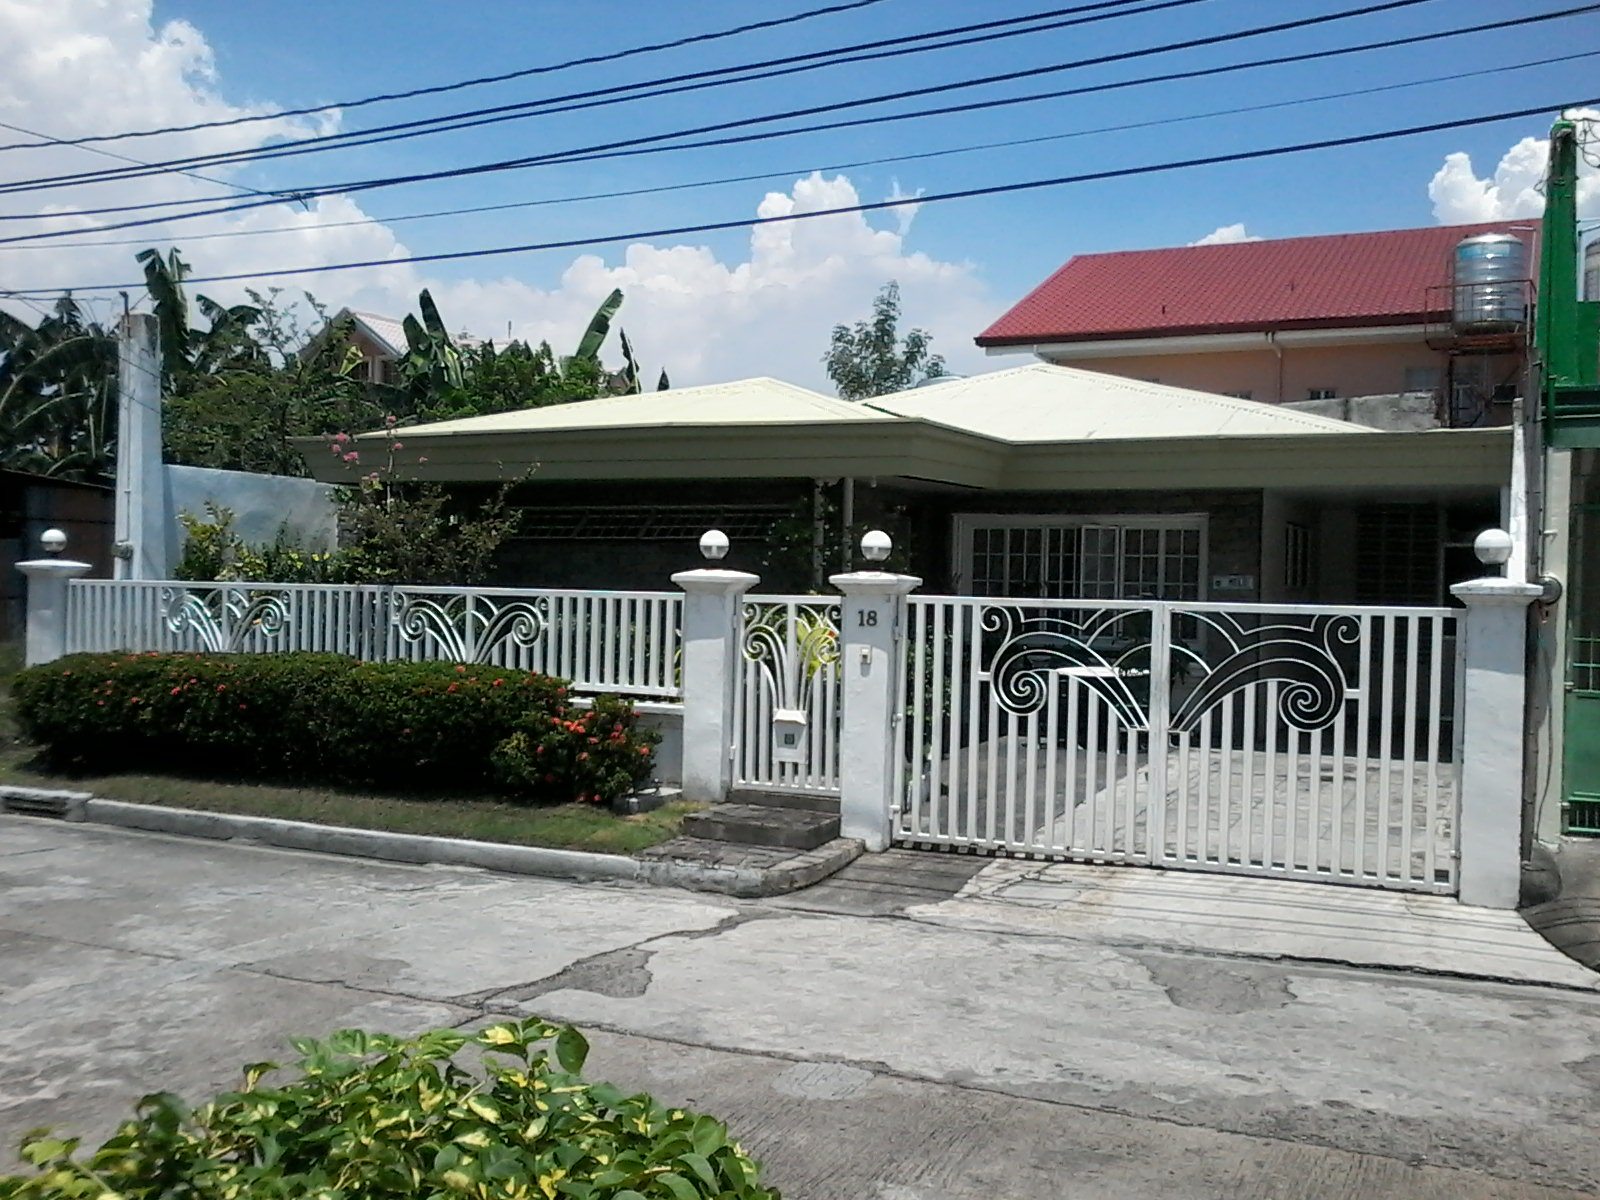 240 Square Meters House In Better Living, Paranaque City Philippine Real  Estate, Philippine House And Lot Properties, Manila Real Estate, Baguio  House And ...